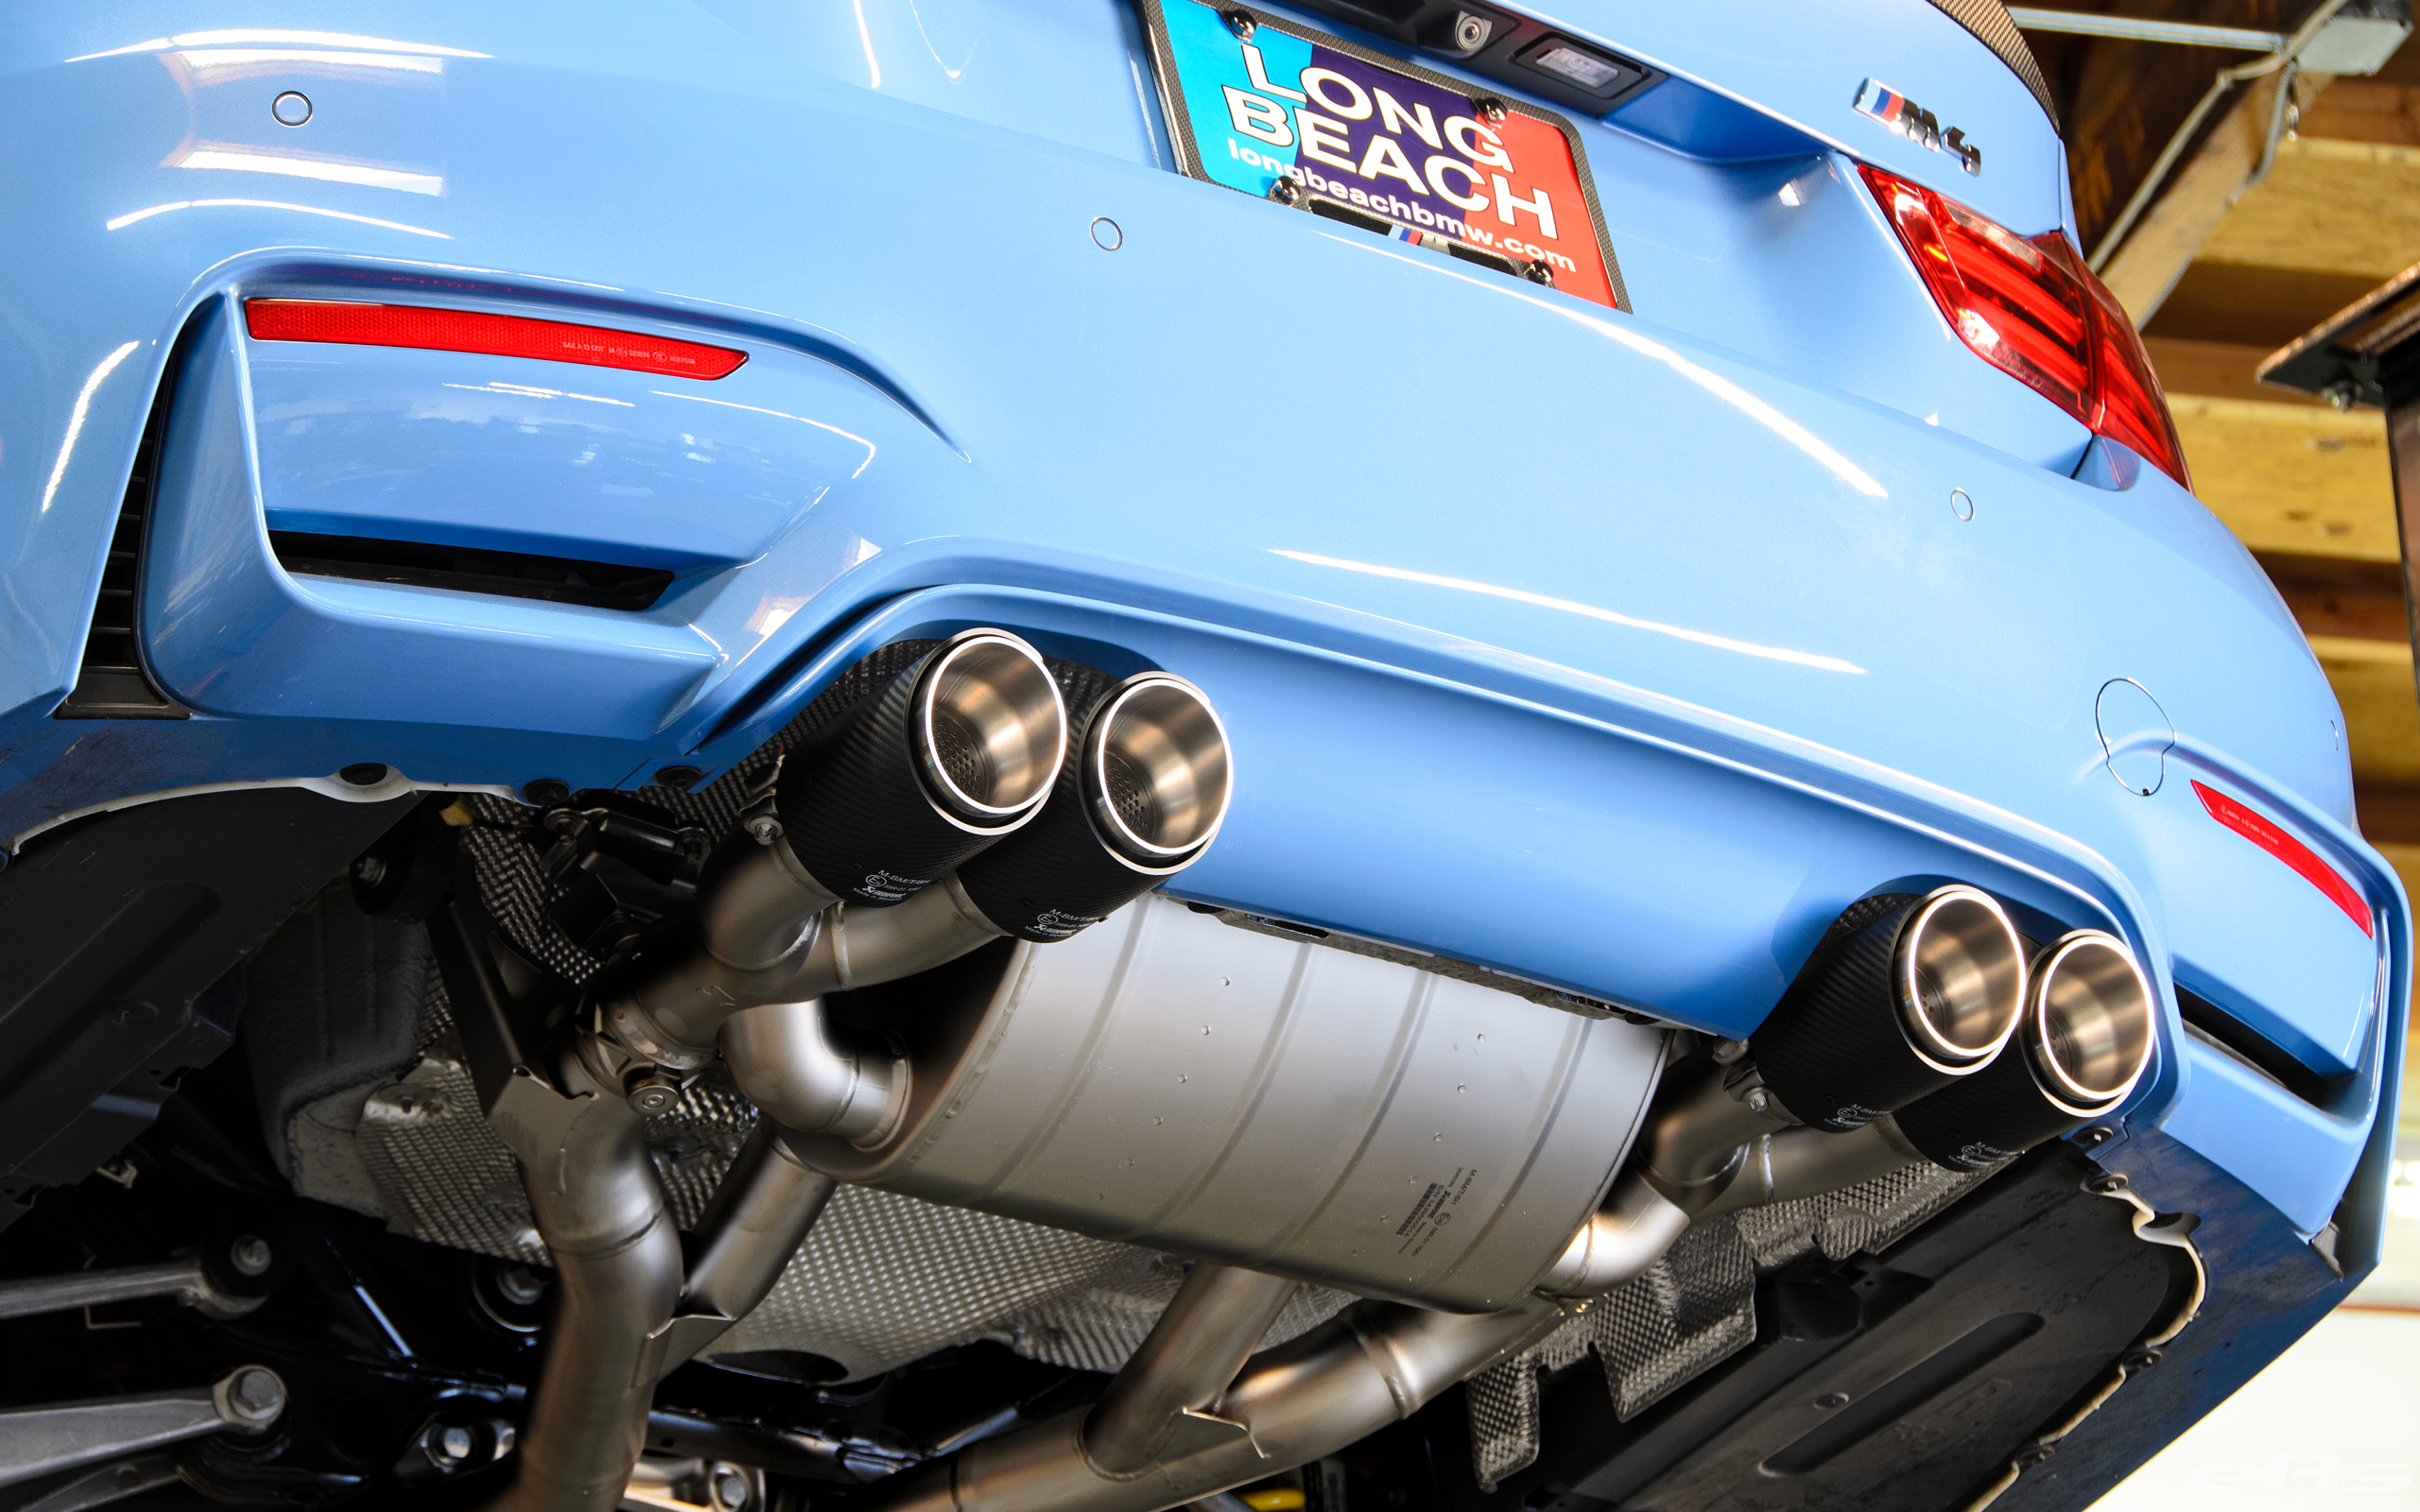 Akrapovic Exhaust And Kw Has Installed On Yas Marina Blue M4